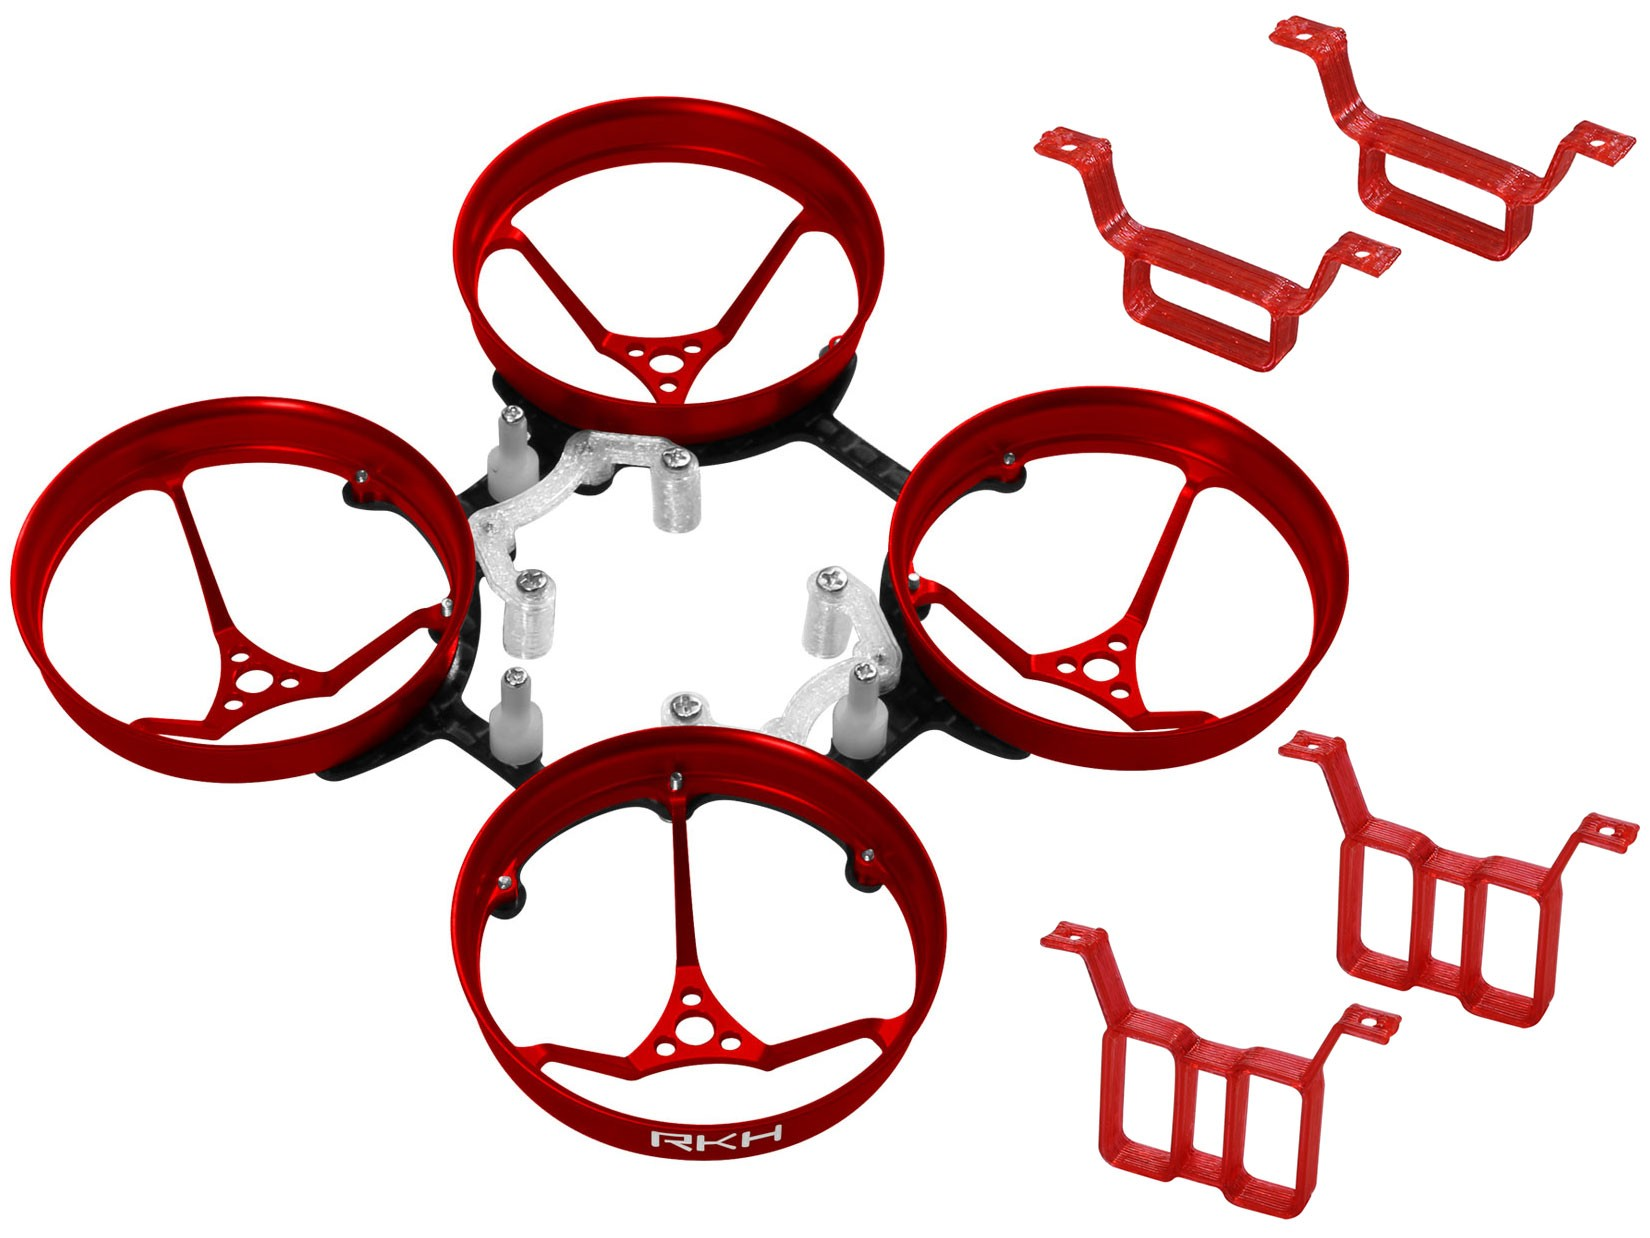 RKH CNC AL Carbon 66mm Brushless Whoop Kit-Red(for 0703/0705)